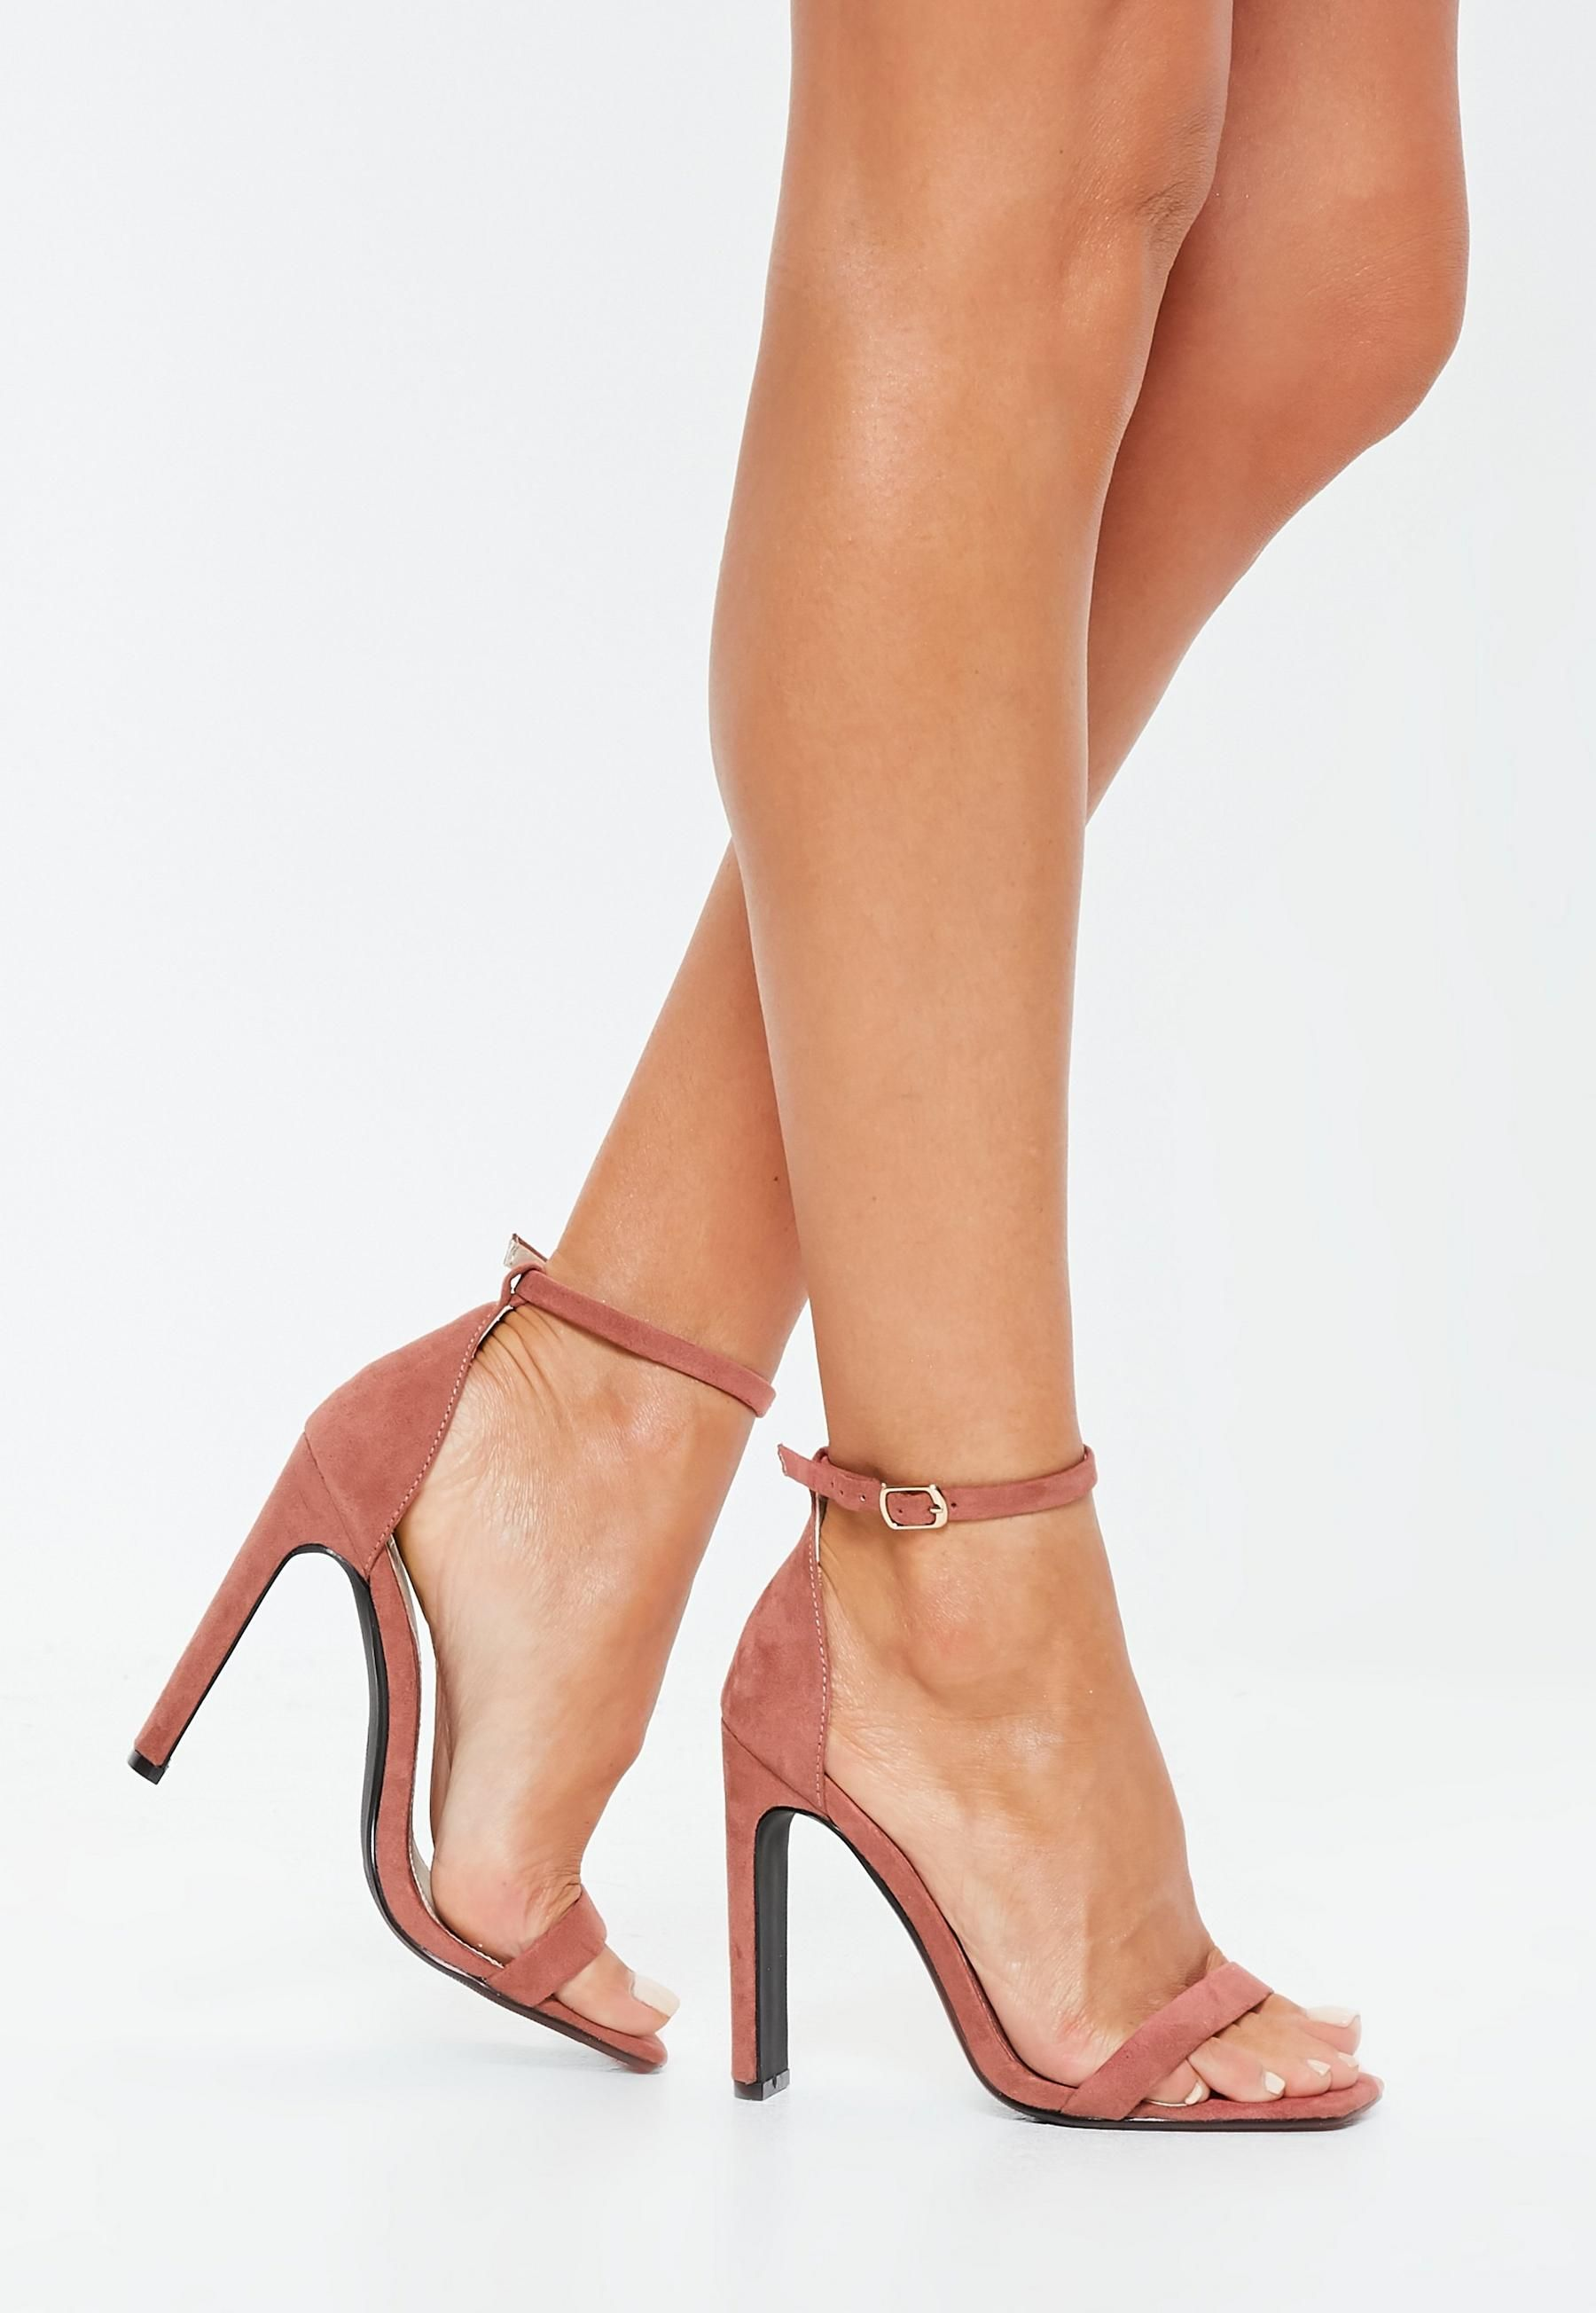 66591c96a301 Missguided Terracotta Pink Square Toe Barely There Heels in 2019 ...